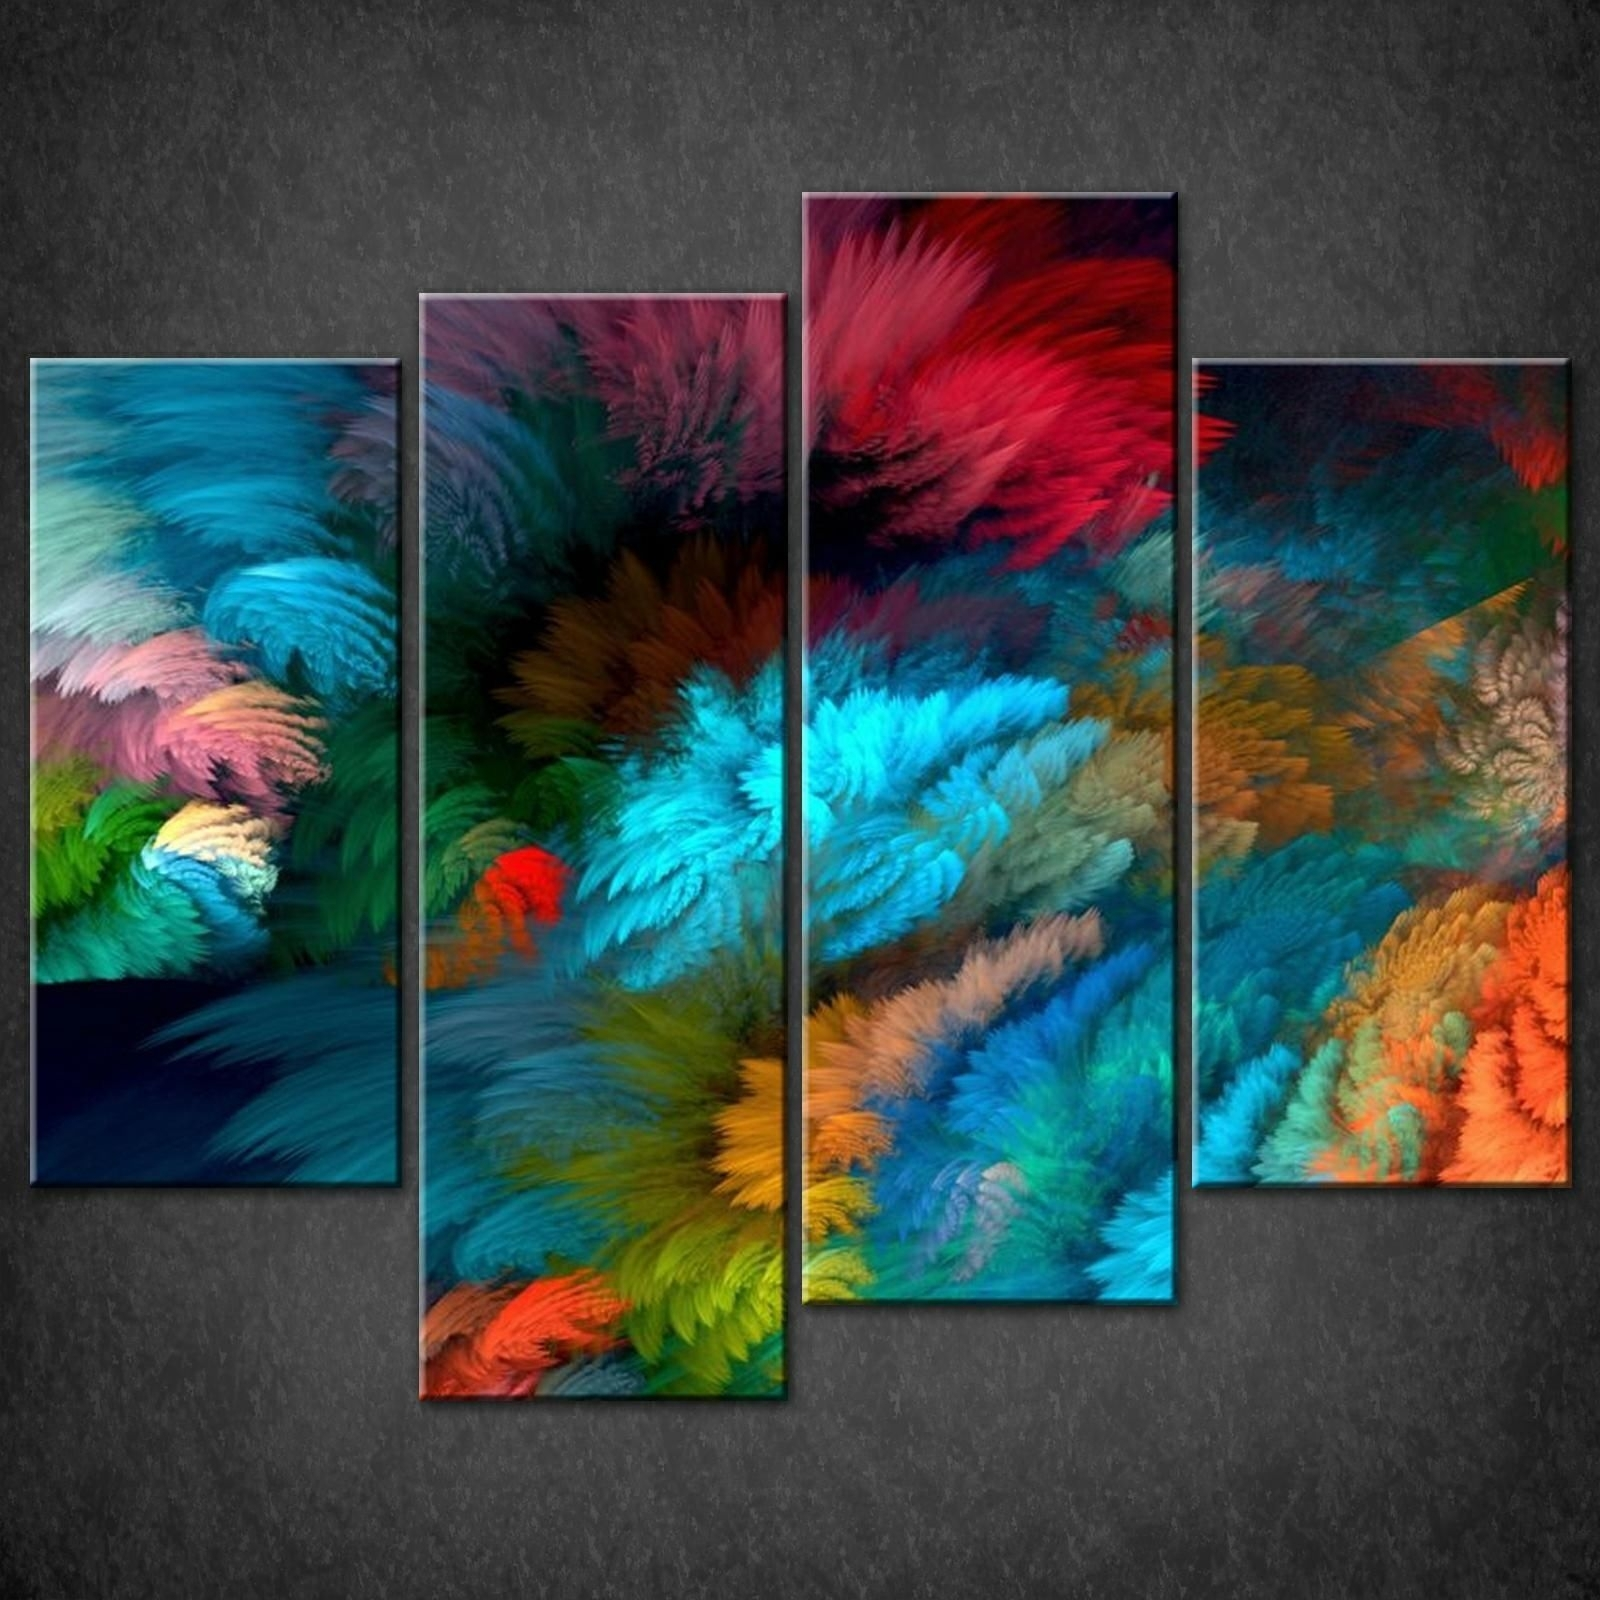 10 Best Ideas Of Large Canvas Painting Wall Art Pertaining To Most Up To Date Large Abstract Canvas Wall Art (View 1 of 20)